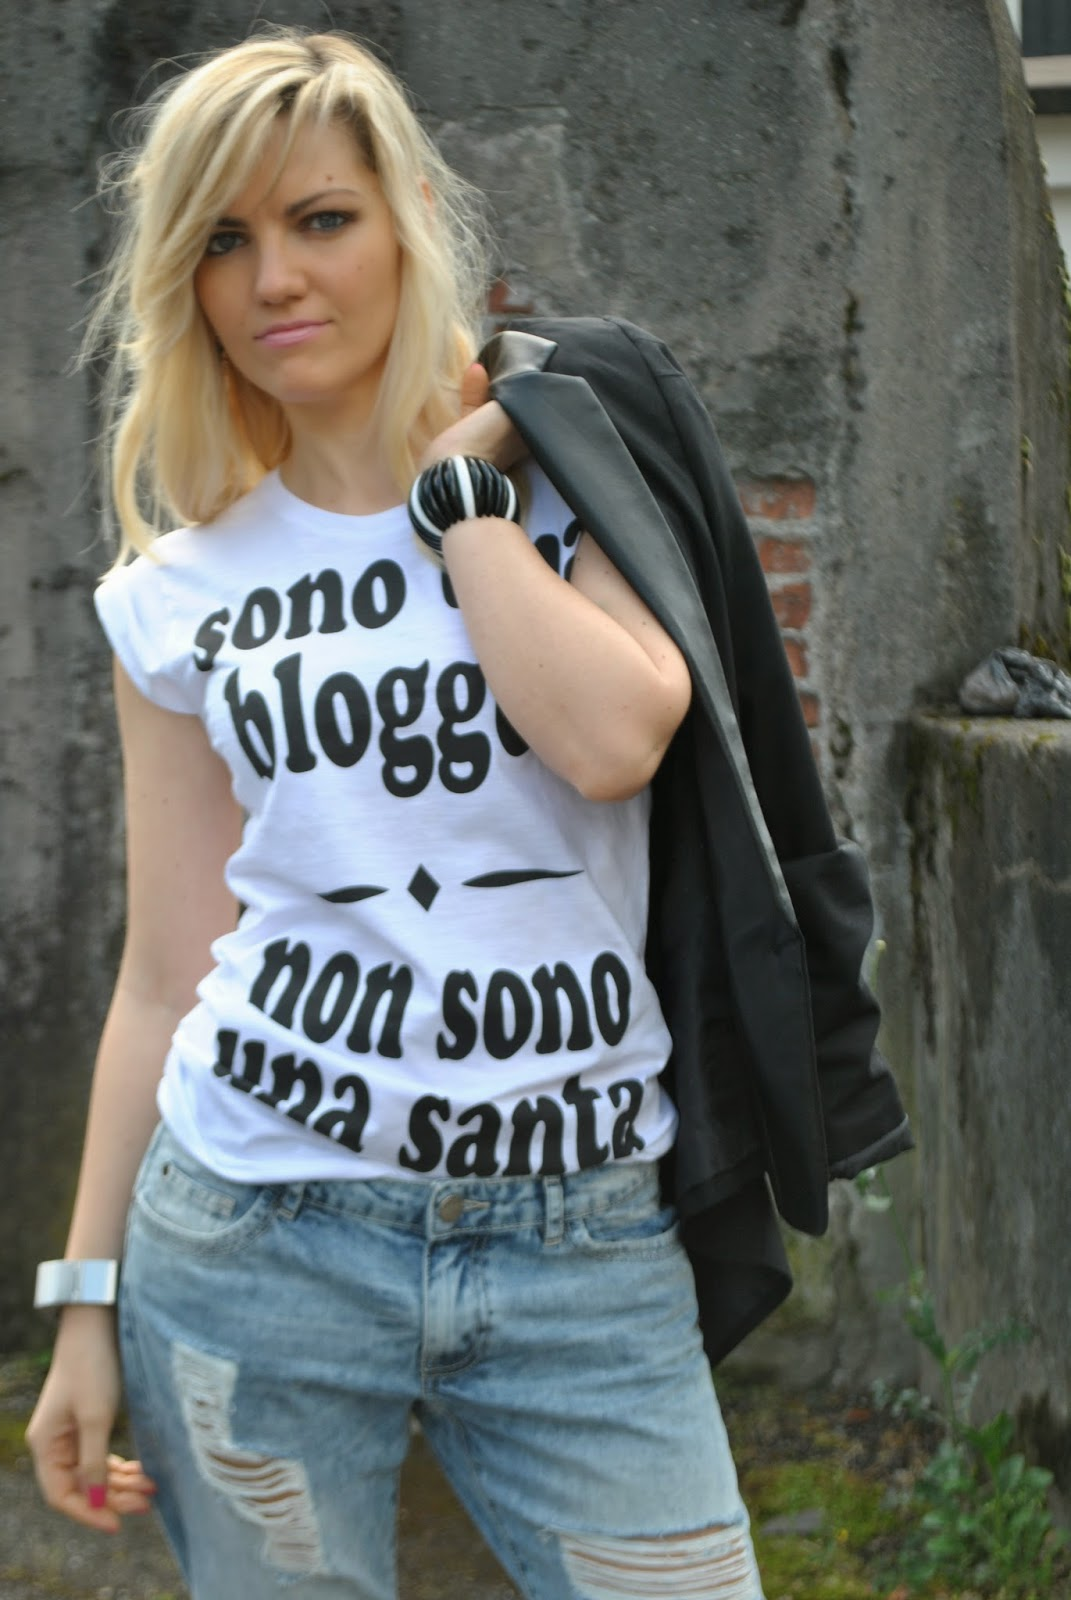 tshirt happiness 10 outfit tshirt come abbinare la tshirt happiness 10 sono una blogger non sono una santa mariafelicia magno outfit boyfriend ripped jeans outfit tshirt outfit giacca nera mariafelicia magno colorblock by felym mariafelicia magno fashion blogger outfit primaverili donna jeans e tacchi tshirt happiness giacca reverse nera sandali etnici come abbianre la giacca nera come abbinare i boyfirend jeans abbianmenti boyfriend jeans pimkie blogger italiane di moda milano fashion blog italiani ragazze bionde girl italian girl fashion bloggers italy how to wear boyfriend ripped jeans black blazer jeans and heels blondie girls fashion bloggers italy